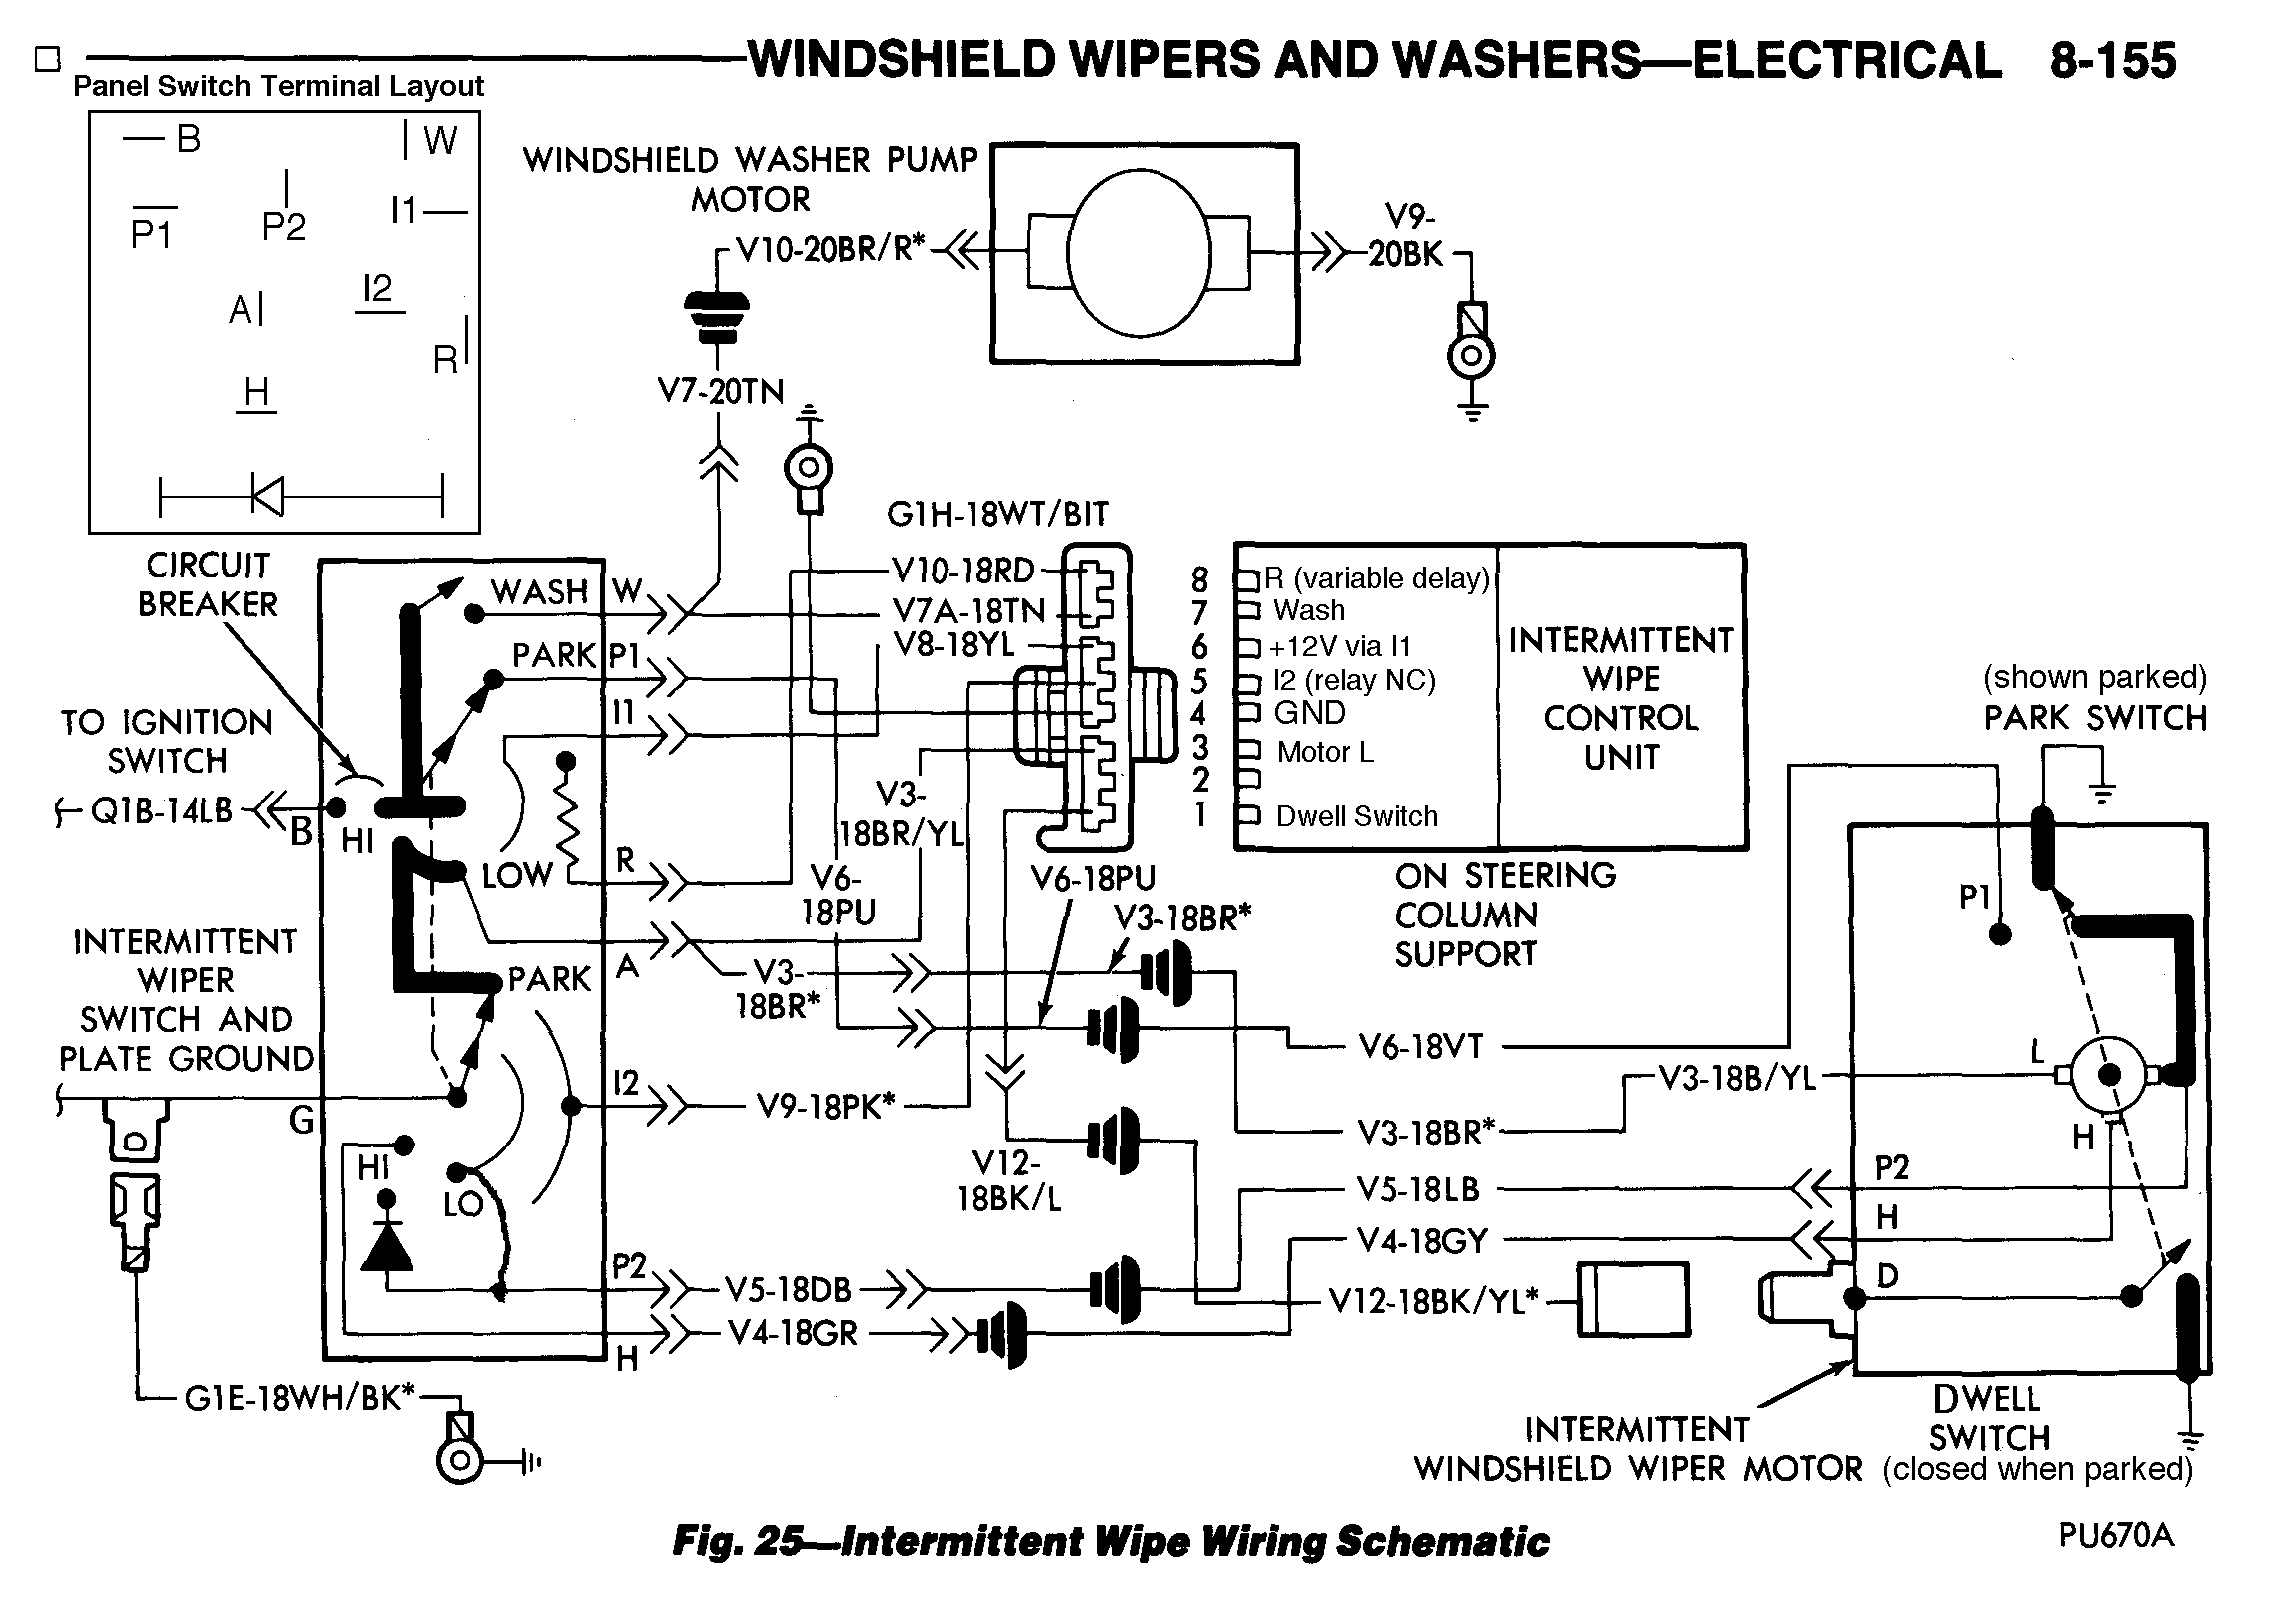 Troubleshooting Windshield Wiper Motor Wiring Diagram 97 F150 Chrysler Intermittent Delay Fix Gm